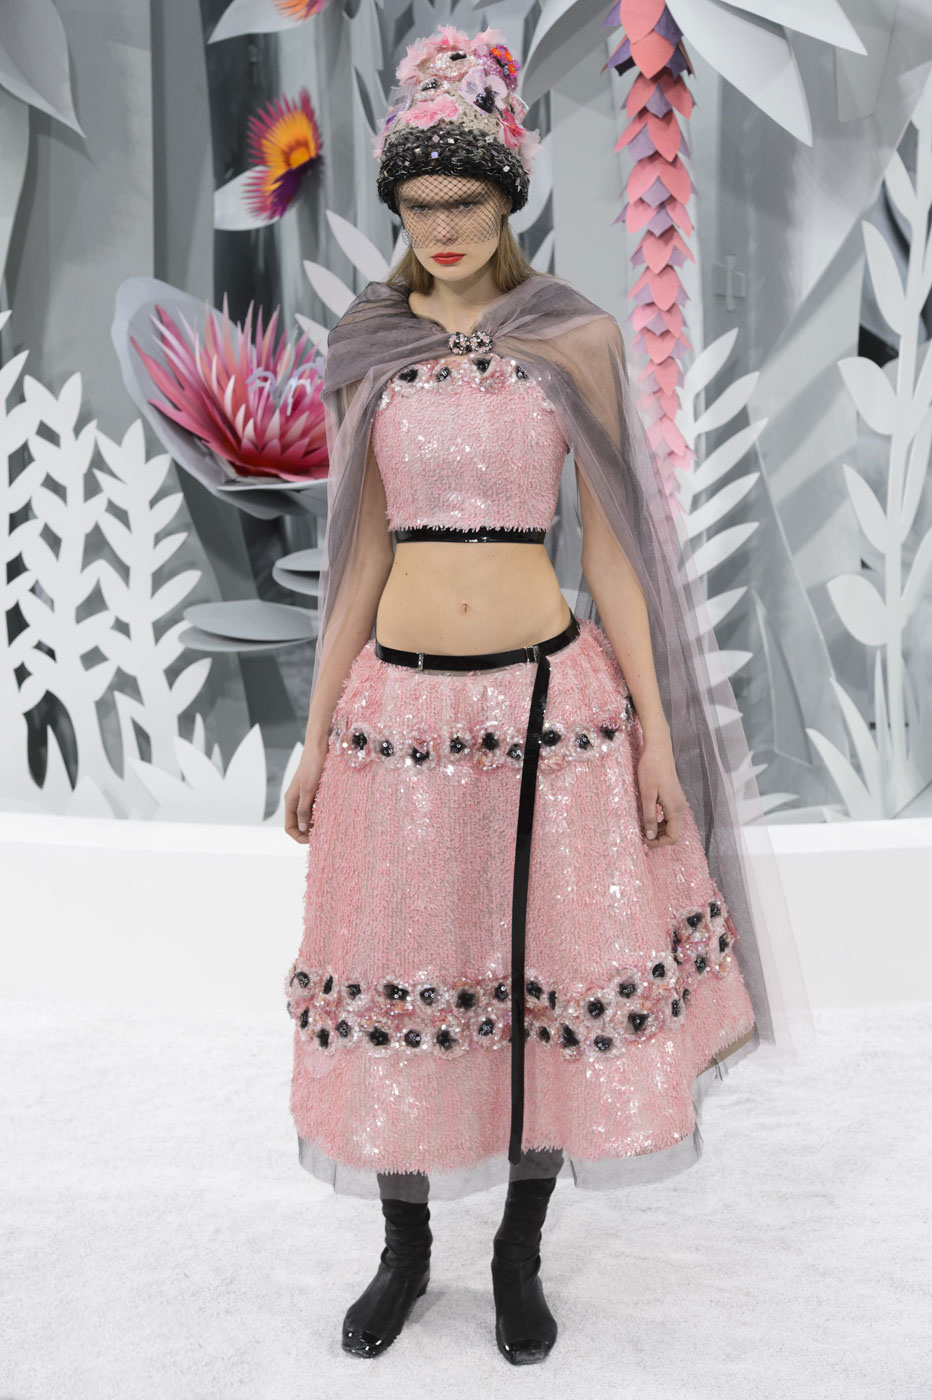 Chanel-fashion-runway-show-haute-couture-paris-spring-summer-2015-the-impression-147